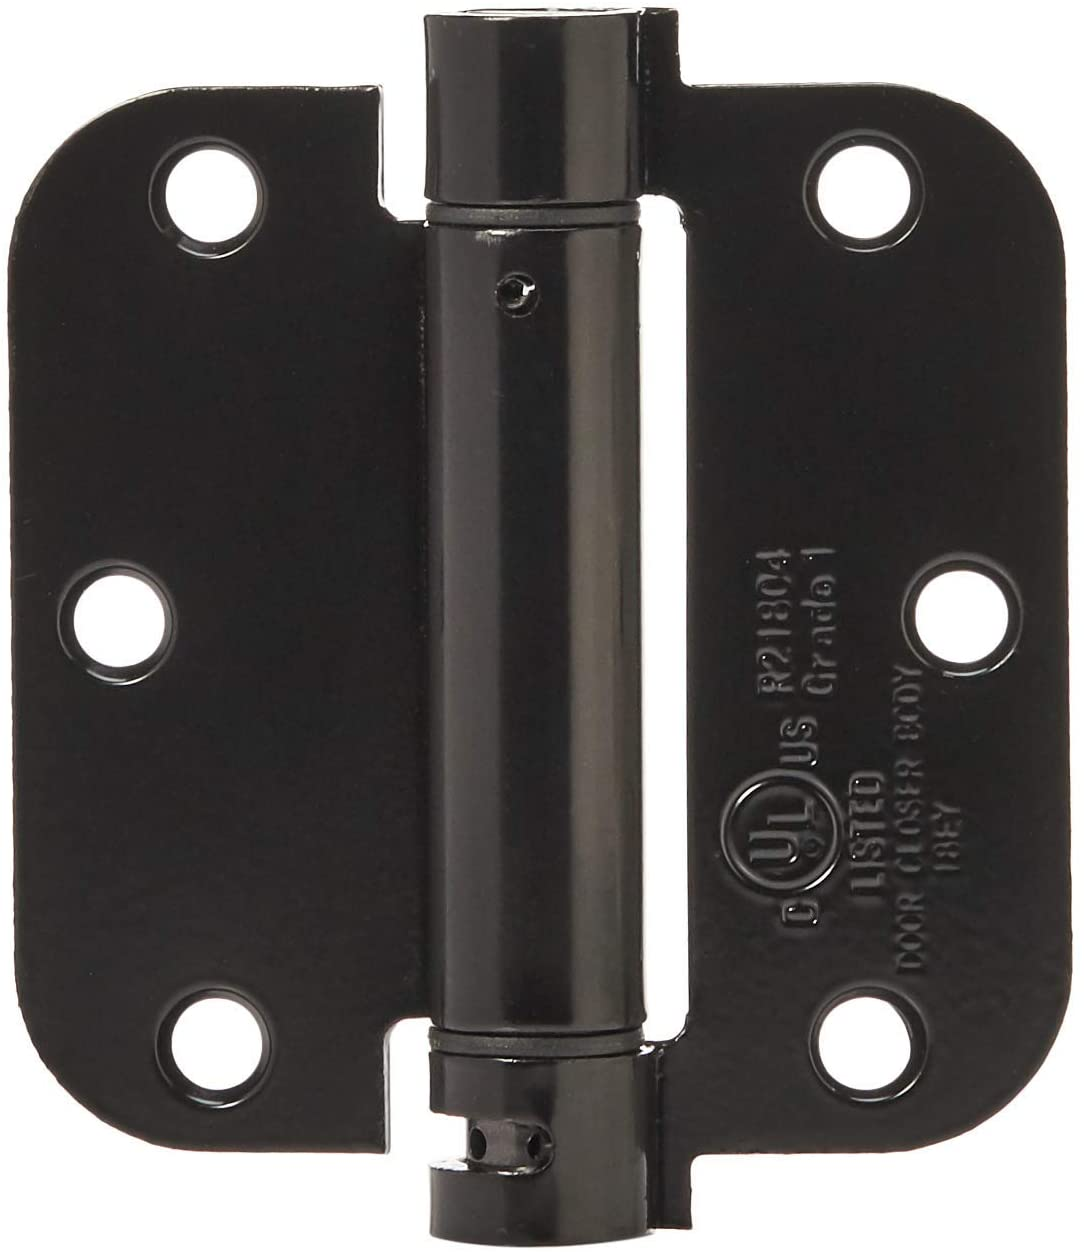 DHgateBasics Self-Closing Door Hinge, 3.5 Inch x 3.5 Inch, 1 Piece, Gloss Black